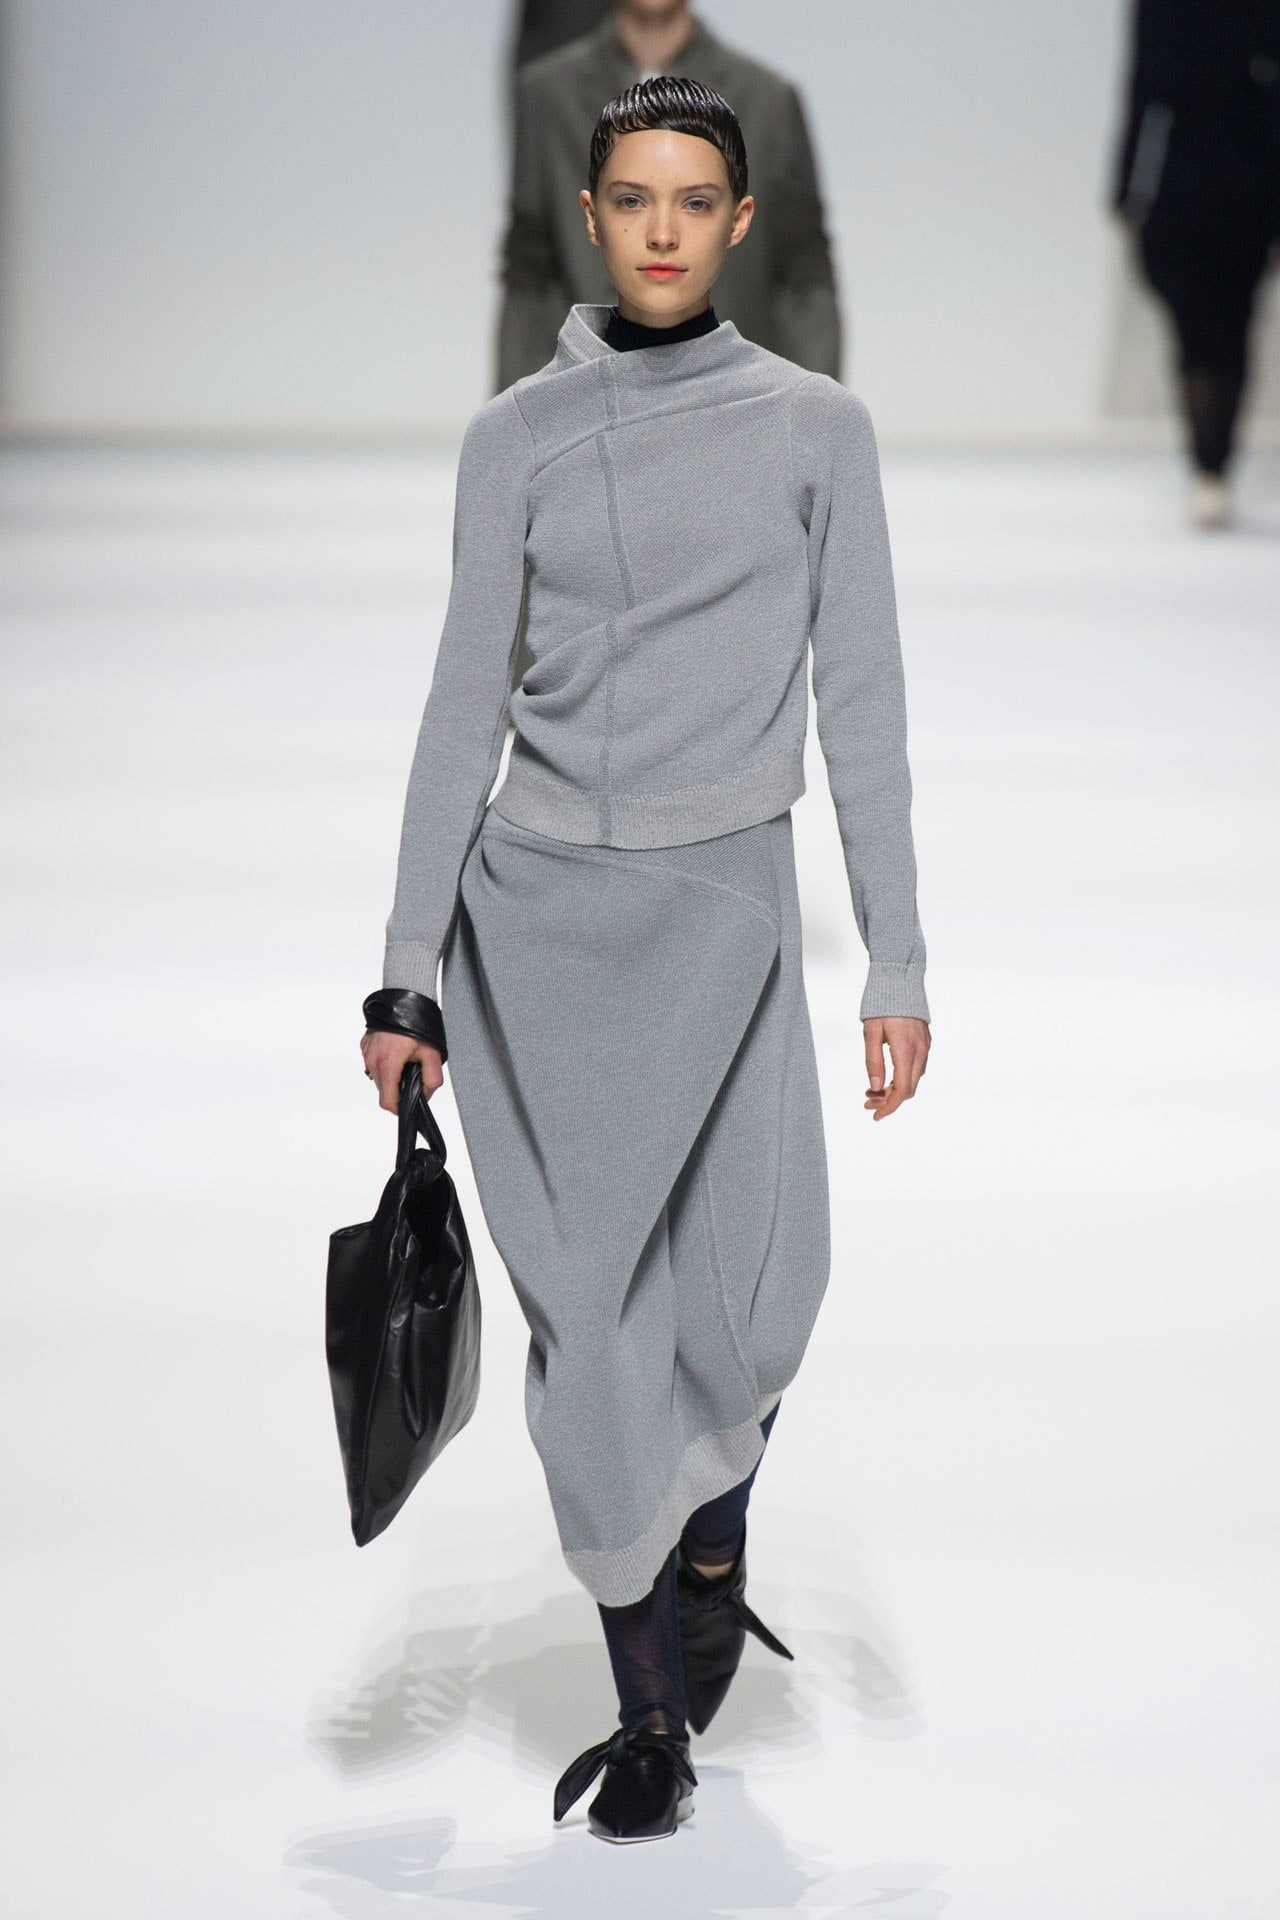 A look from Jil Sander's ready-to-wear autumn/winter '18/'19 collection. Image credit: Indigital